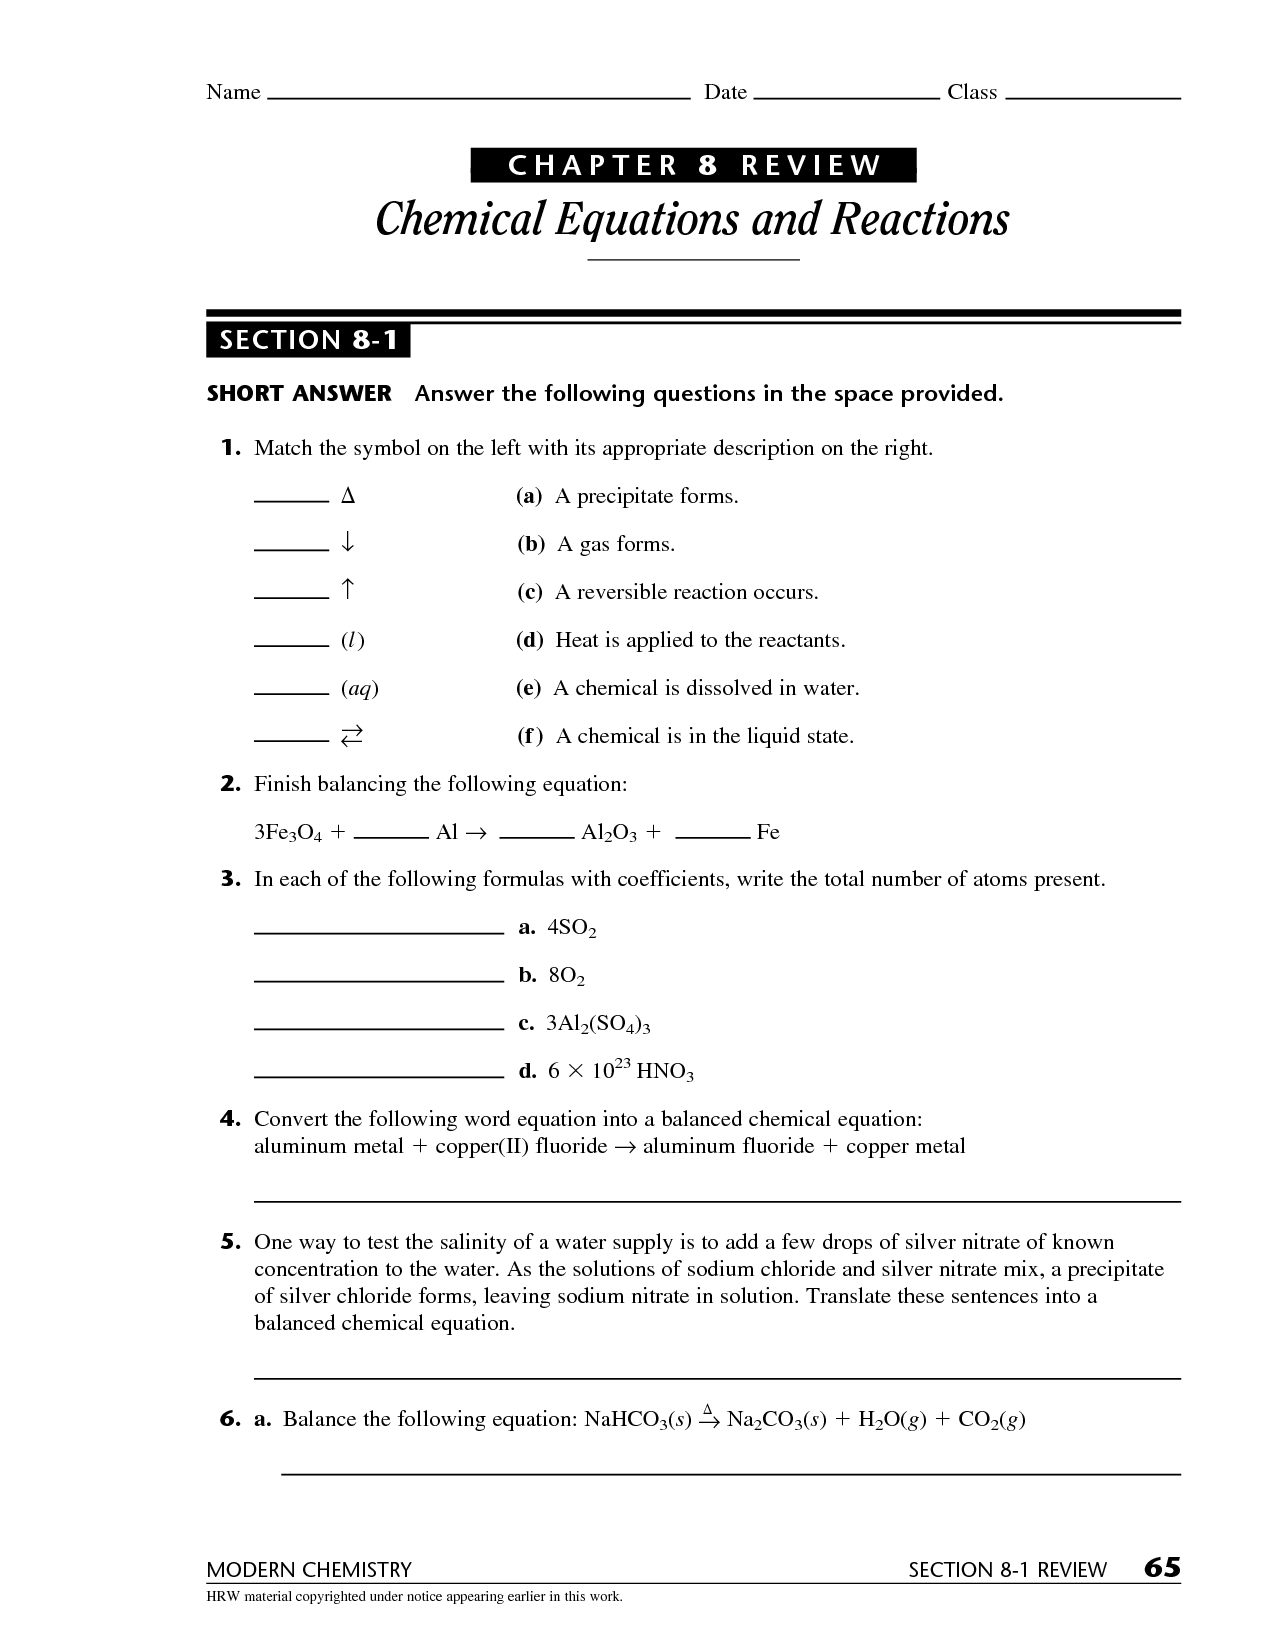 Chapter 8 Review Chemical Equations And Reactions